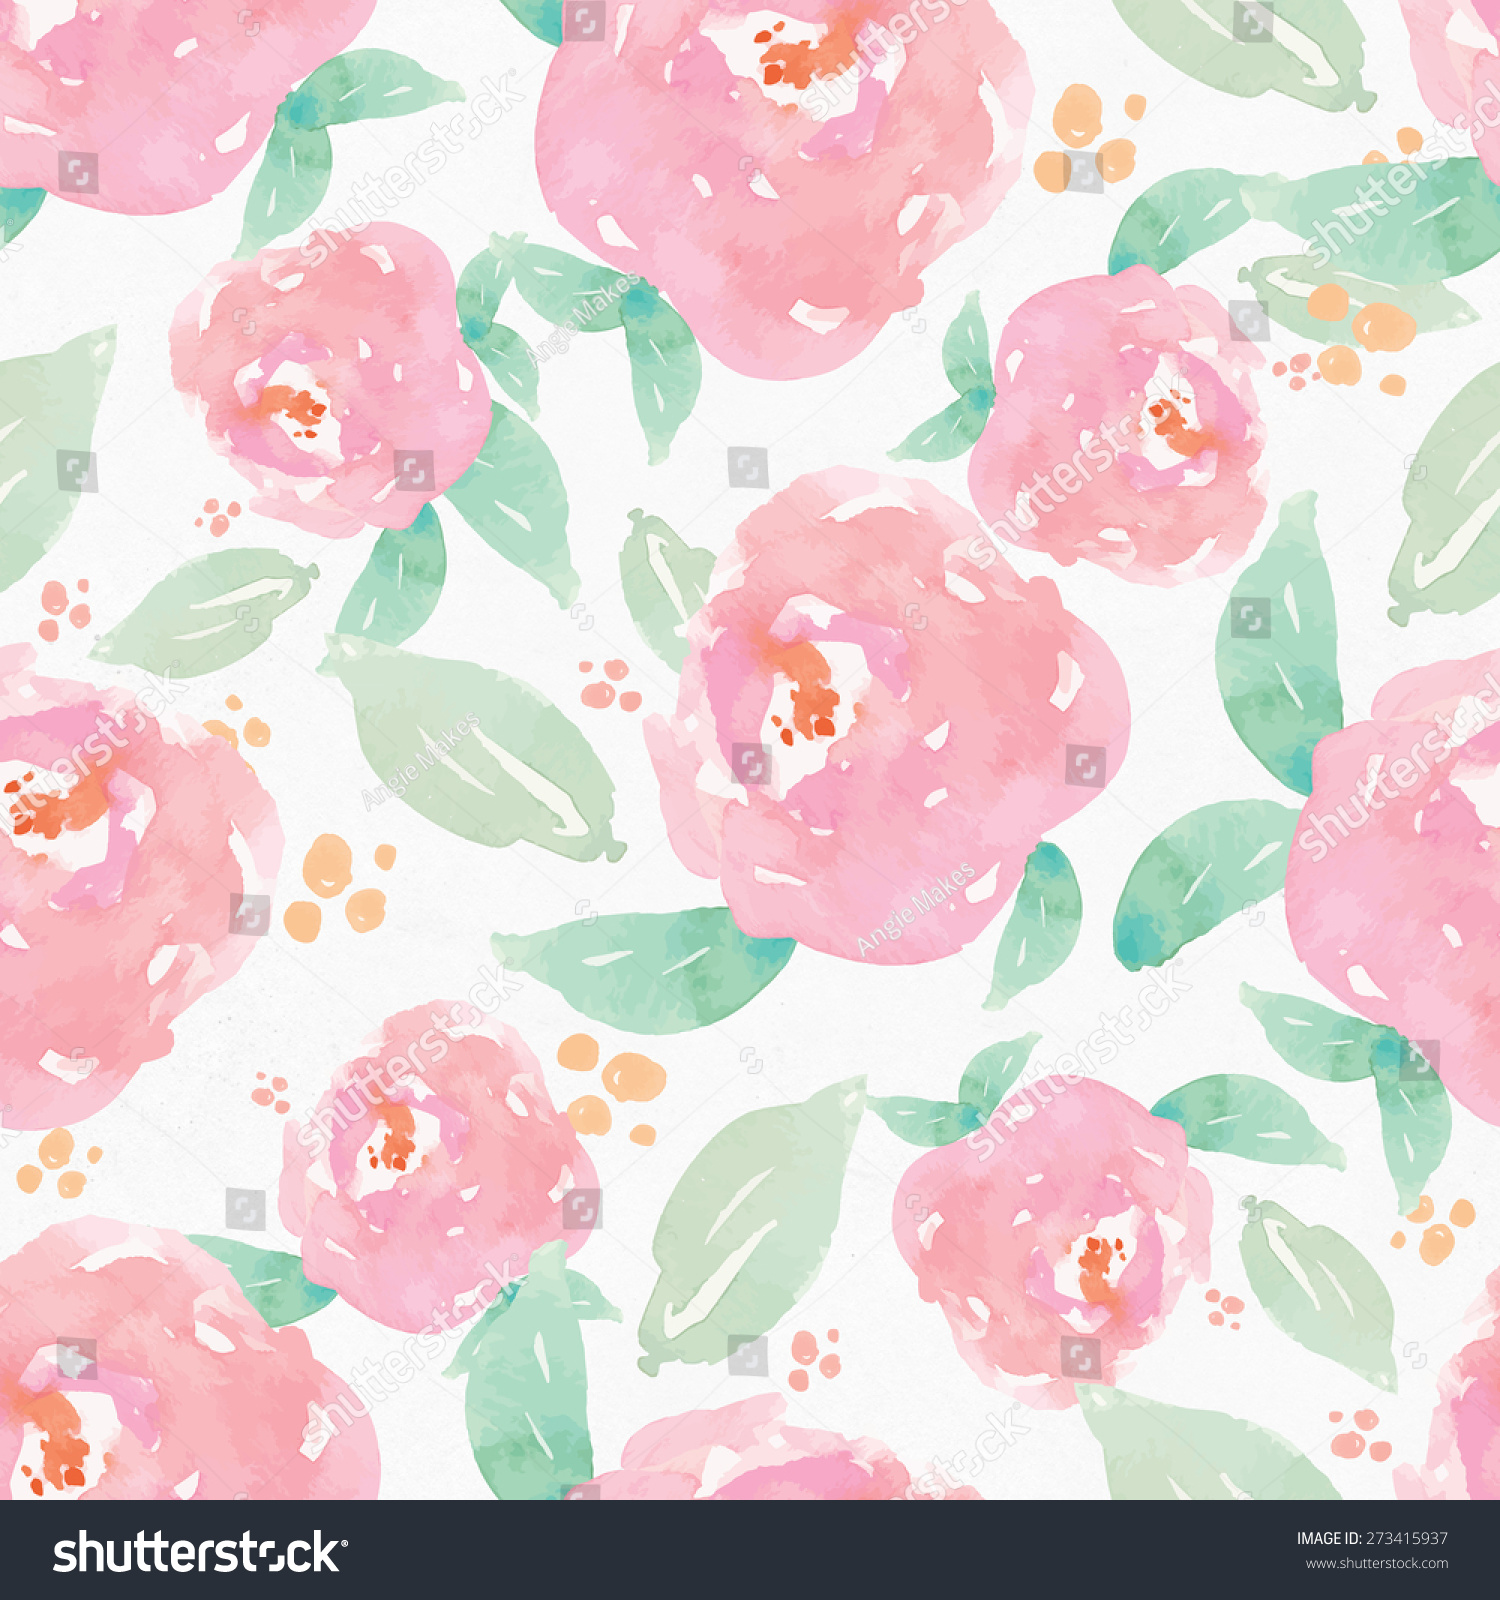 Seamless Girly Pink Repeating Watercolor Floral Stock Illustration